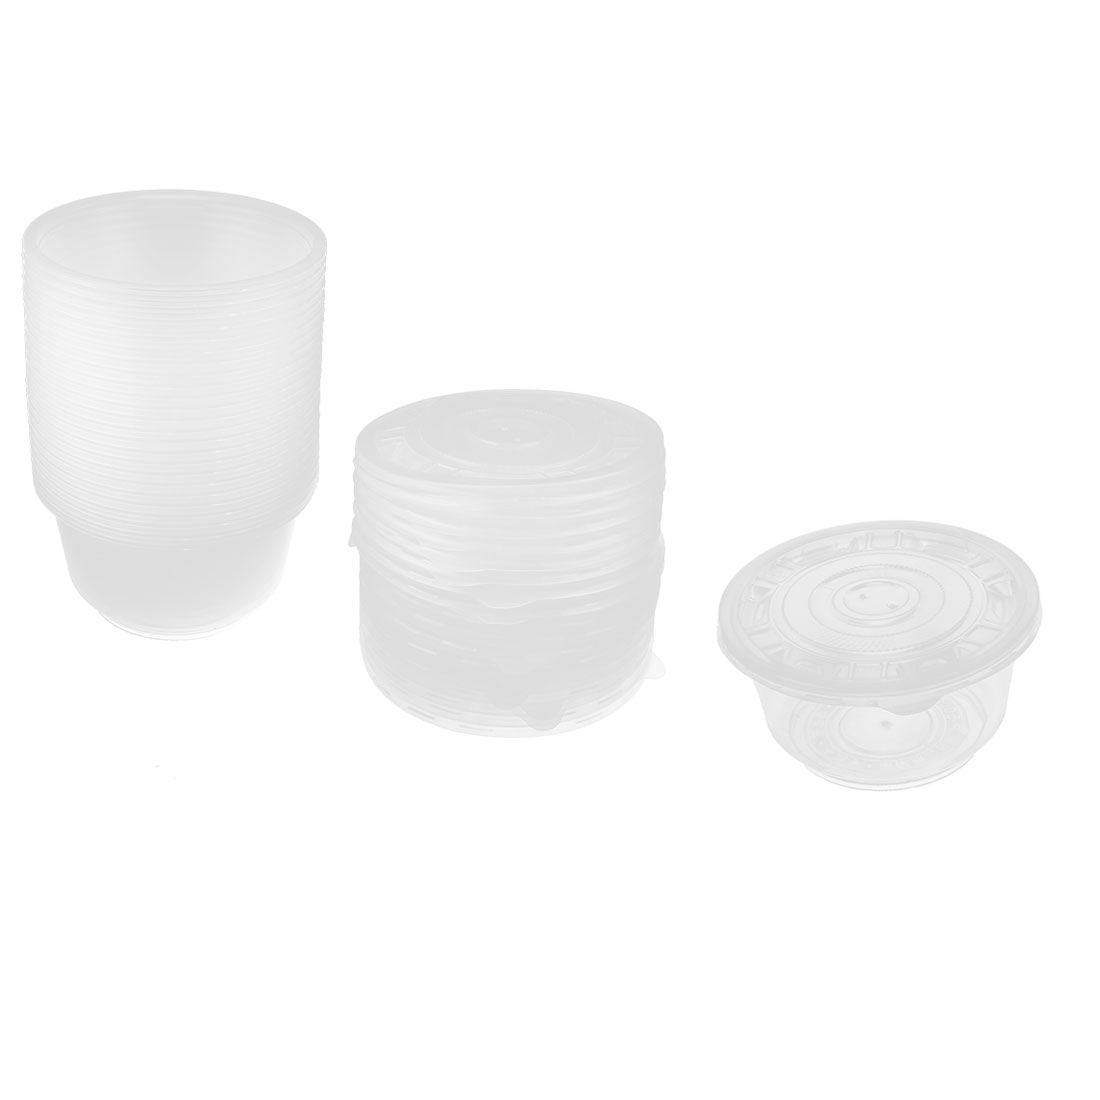 25pcs Outdoor Picnic Clear Plastic Disposable Rice Soup Bowl w Caps